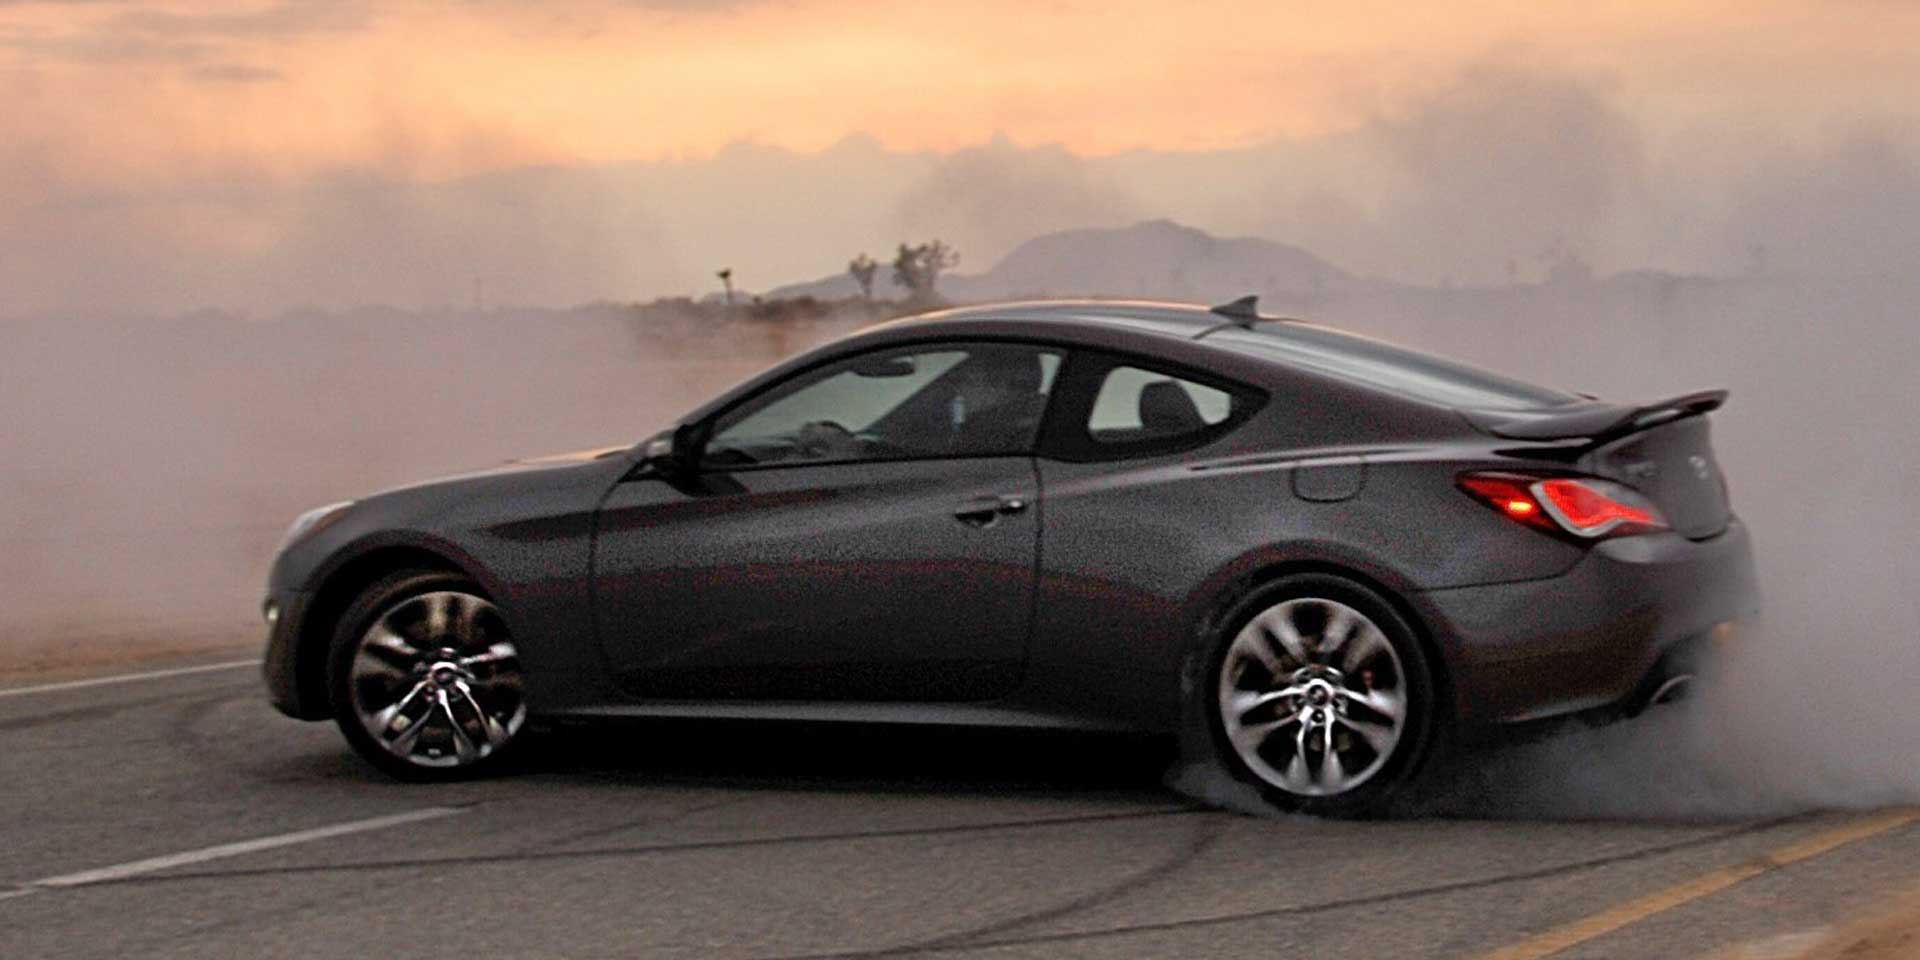 2016 Hyundai Genesis For The Four Door Sedan And Two Coupe Wear Fluidic Sculpture Design Receives Additional Standard Equipment